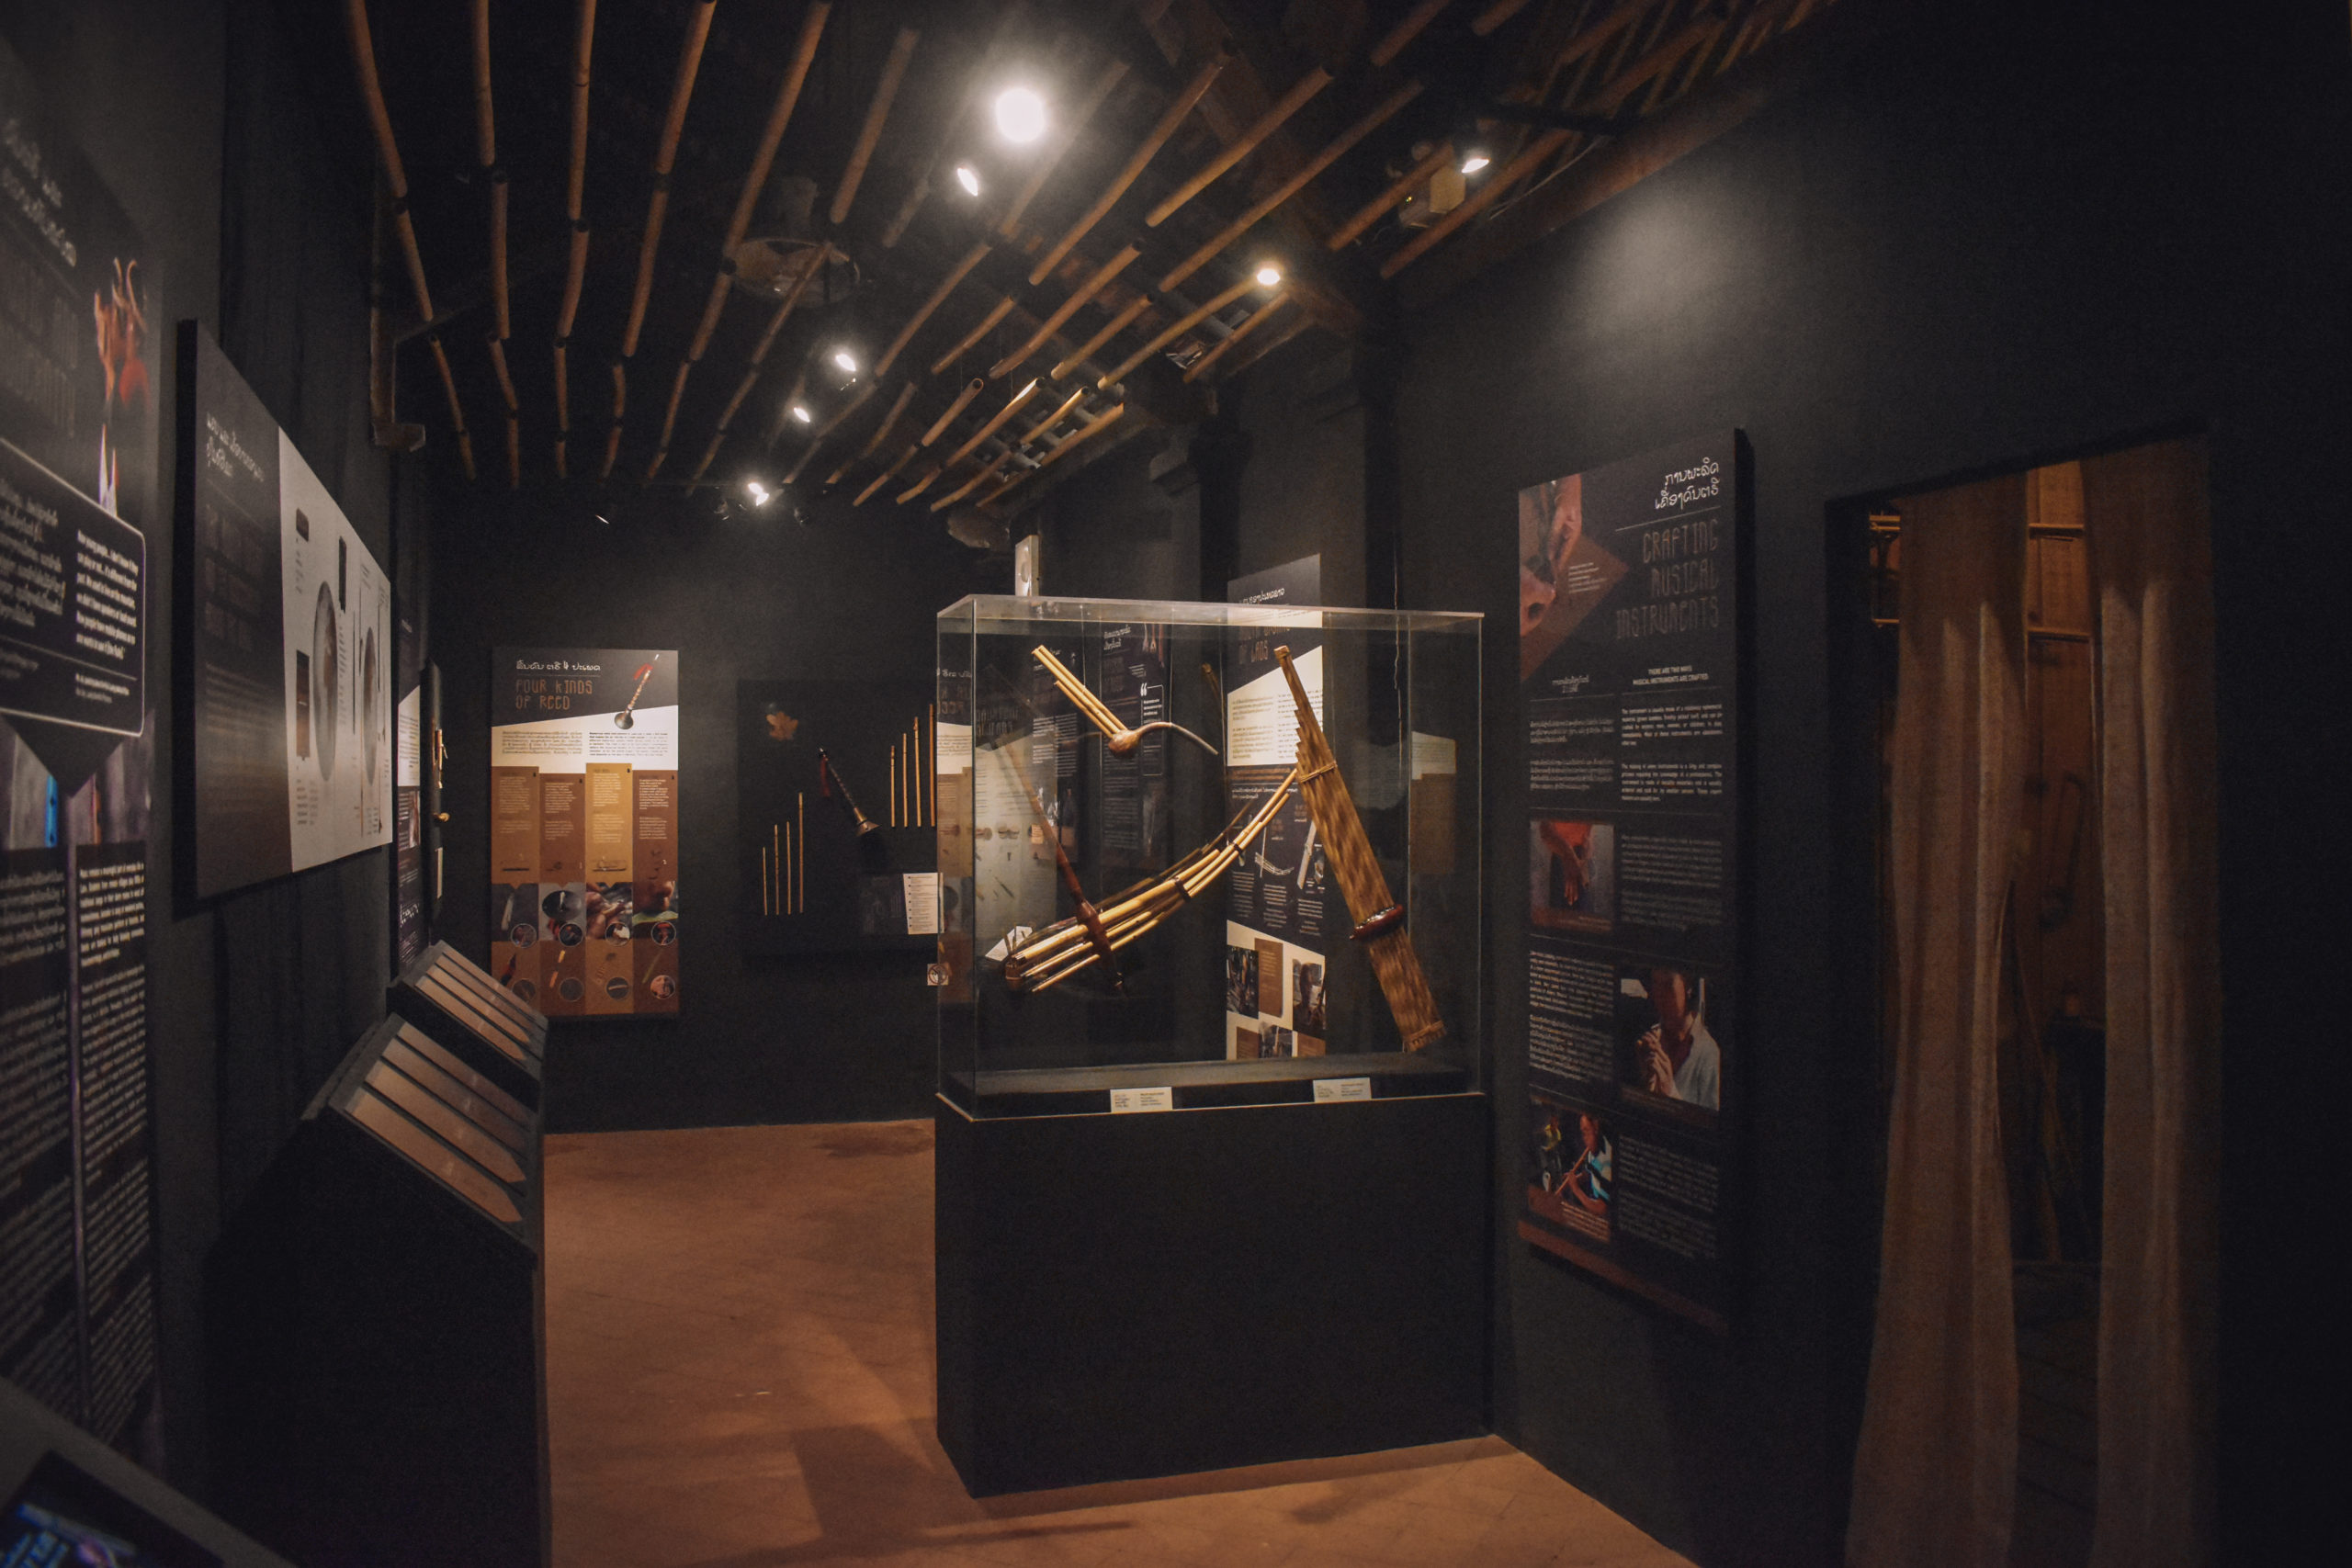 Traditional Arts & Ethnology Museum